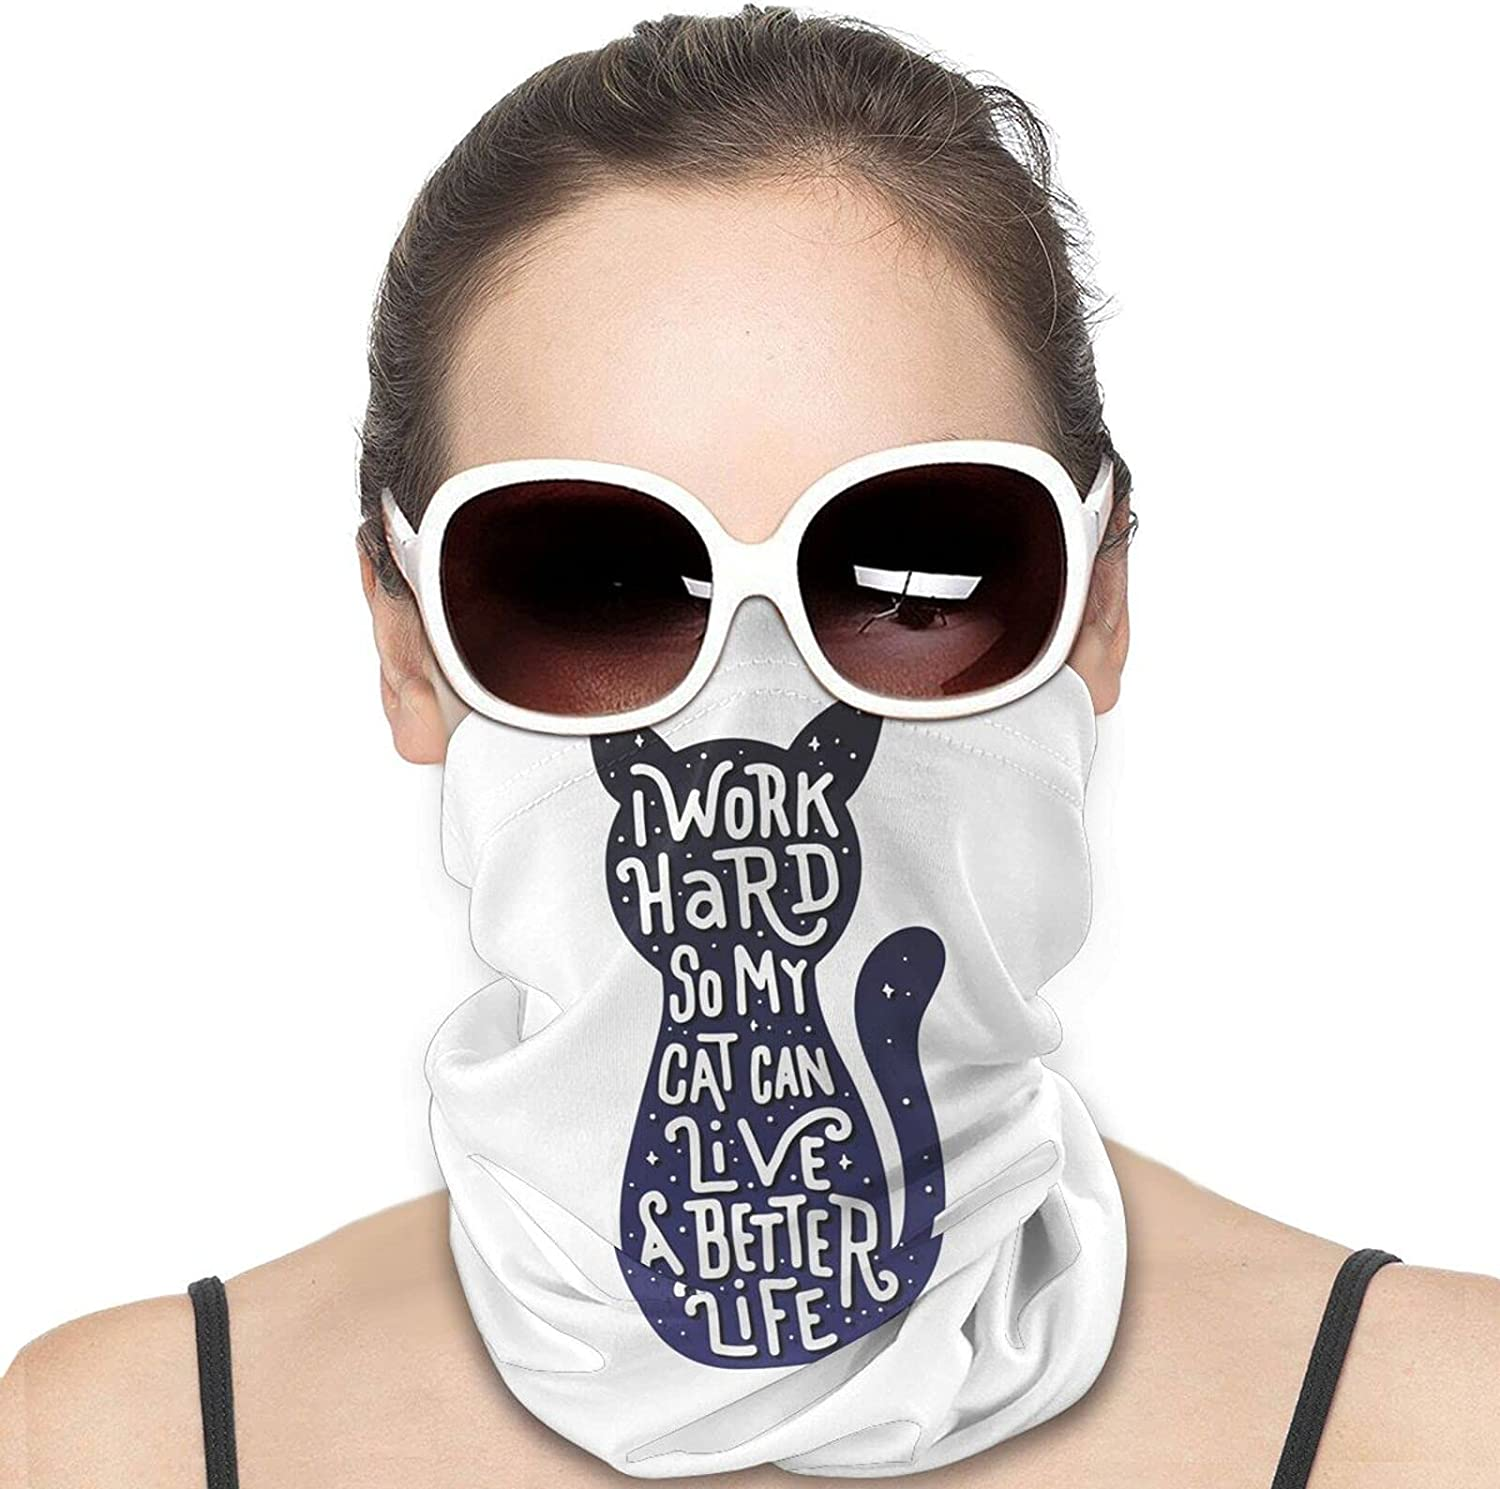 My Cat Can Have A Better Life Round Neck Gaiter Bandnas Face Cover Uv Protection Prevent bask in Ice Scarf Headbands Perfect for Motorcycle Cycling Running Festival Raves Outdoors